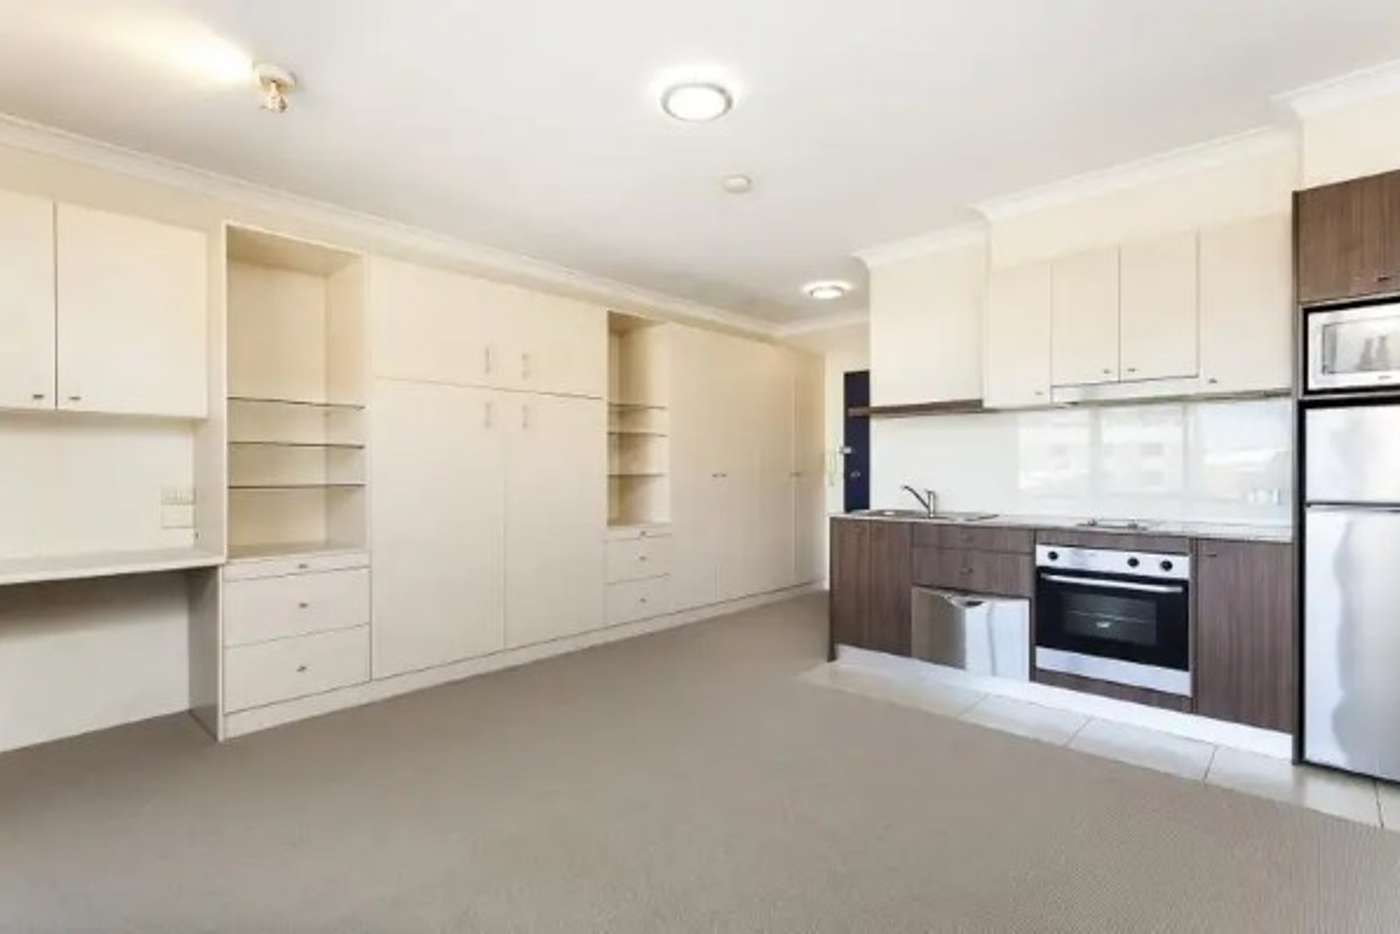 Main view of Homely apartment listing, 202/200 Maroubra Road, Maroubra NSW 2035